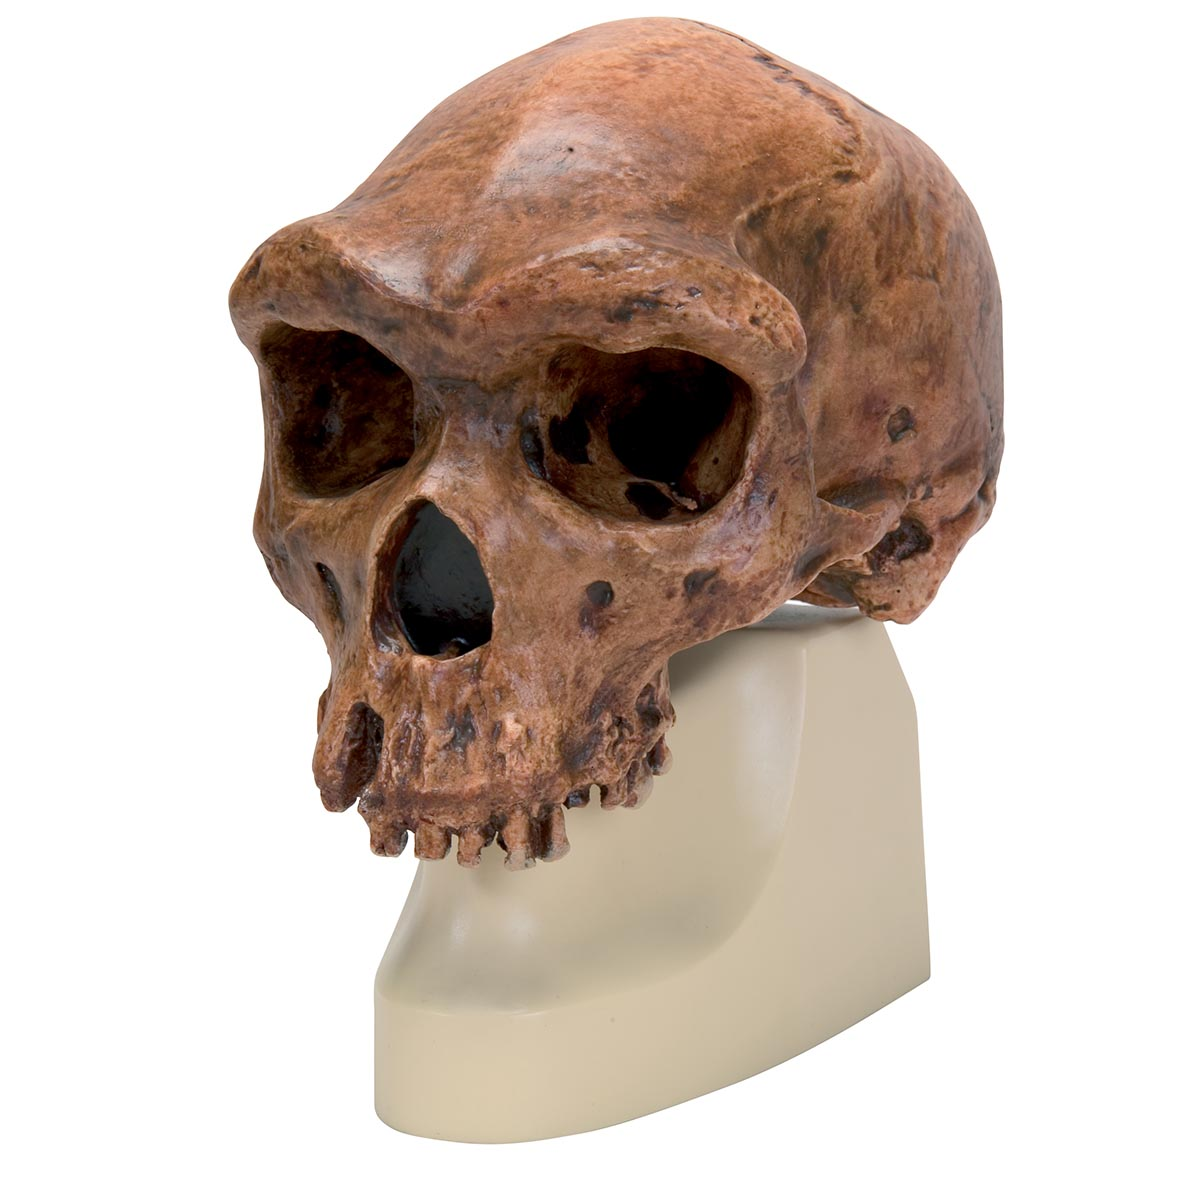 Comparative Anatomy Model - Plastic Skull Model - Anthropology Skull ...